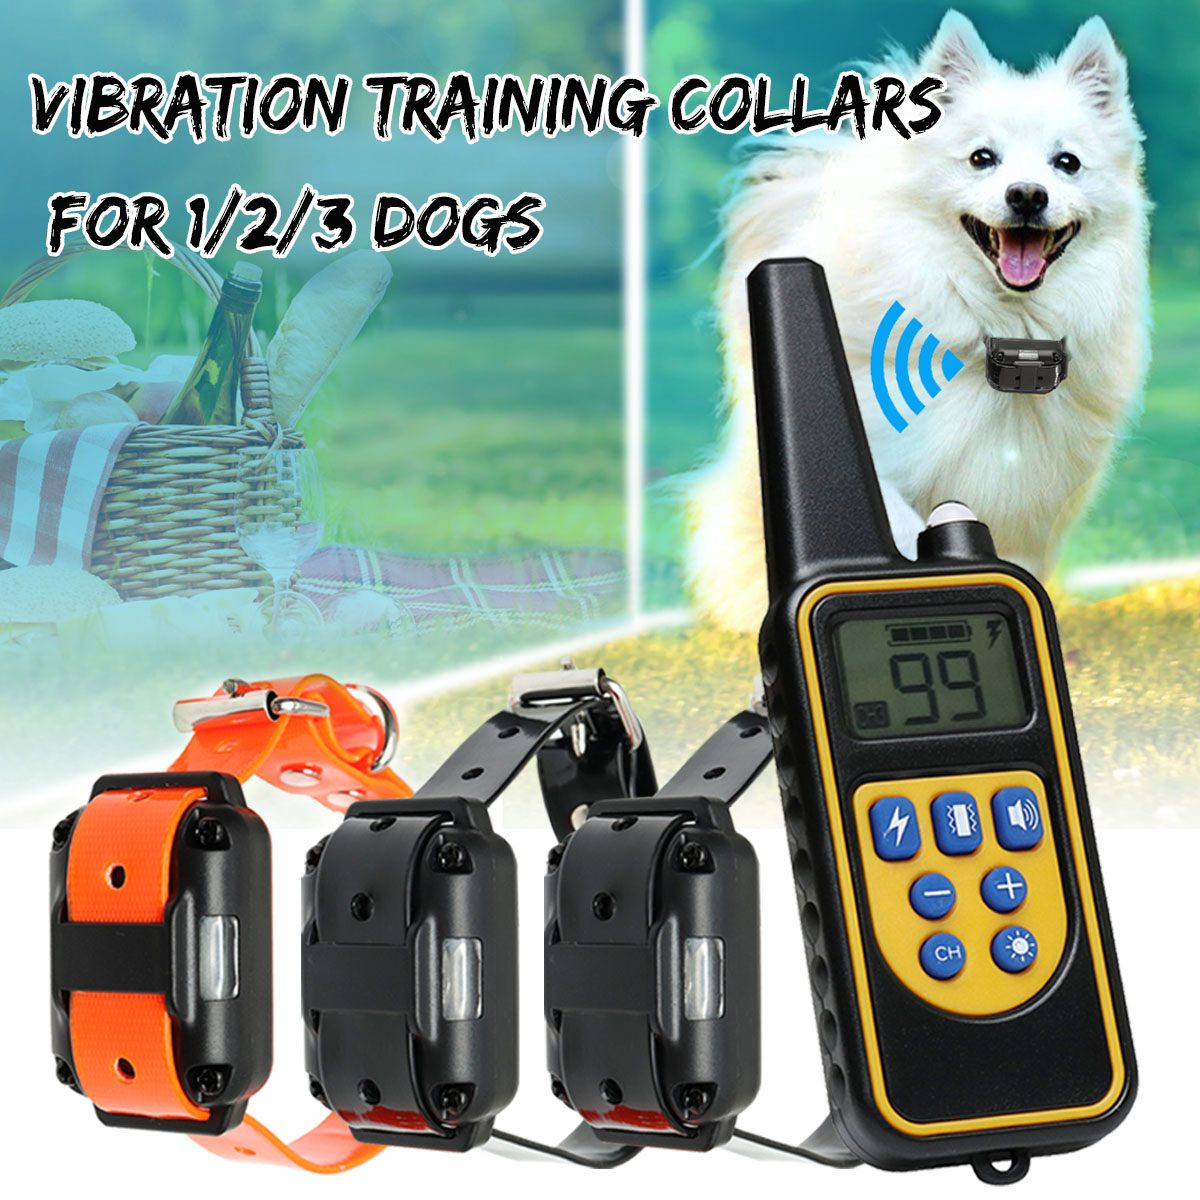 Wireless <font><b>Electric</b></font> <font><b>Dog</b></font> Pet Fence Waterproof Rechargeable Shock Vibration Sound <font><b>Remote</b></font> 1/2/3 <font><b>Dog</b></font> <font><b>Training</b></font> <font><b>Collar</b></font> <font><b>Remote</b></font> Controller image